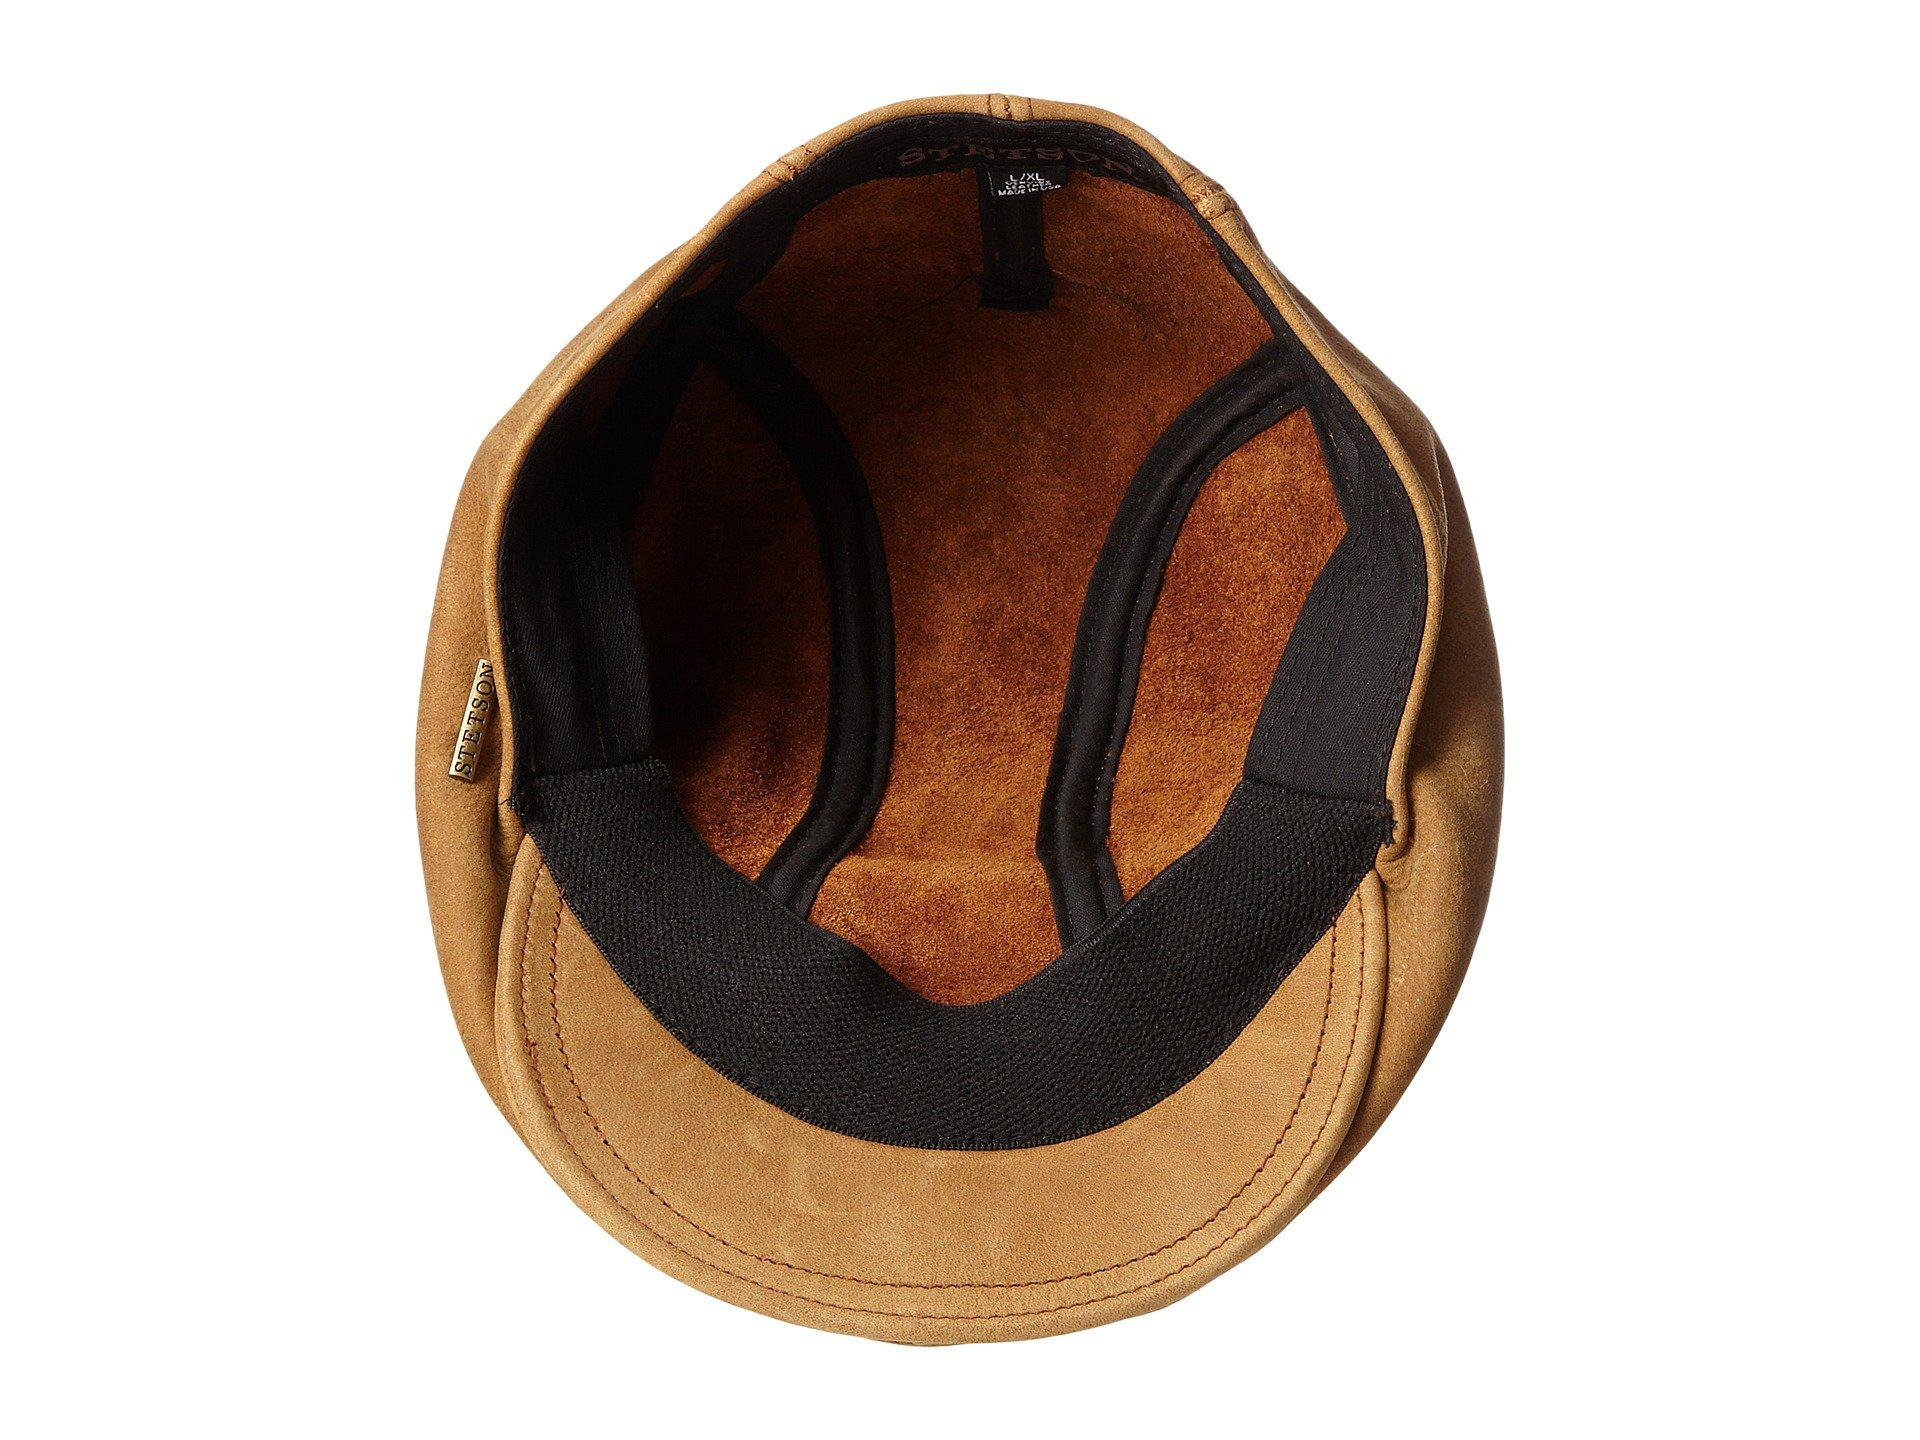 Lyst - Stetson Distressed Leather Ivy Cap (brown) Caps in Brown for Men ed1666a4b4cb